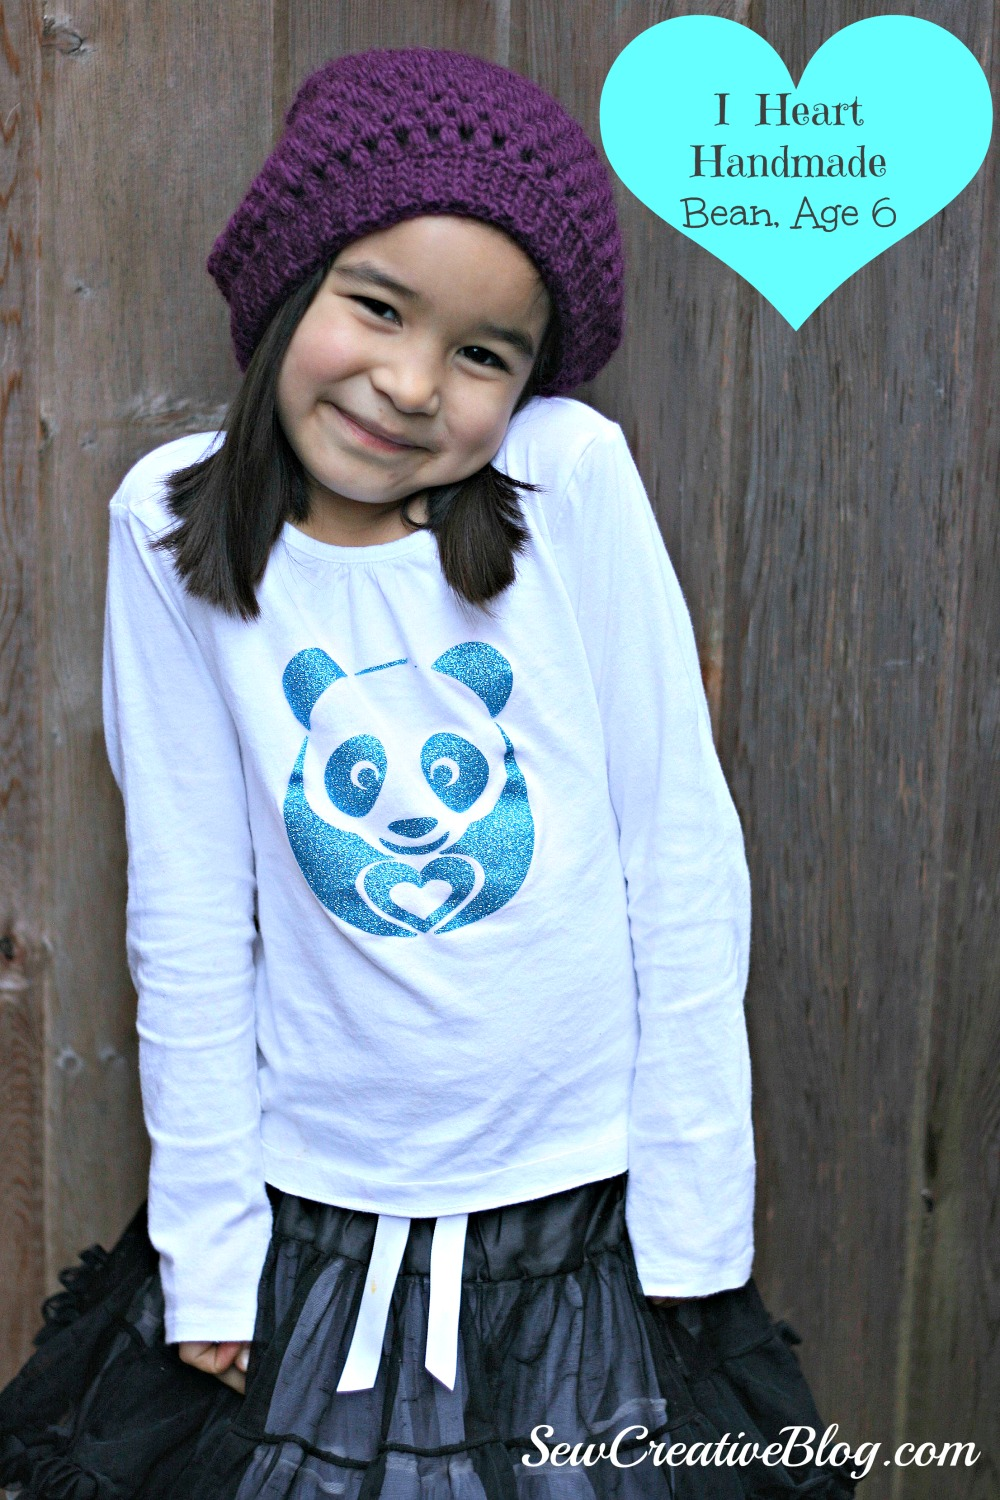 I Heart Handmade, Bean Age 6, Panda Shirt Made On Cricut Explore, Sew Creative